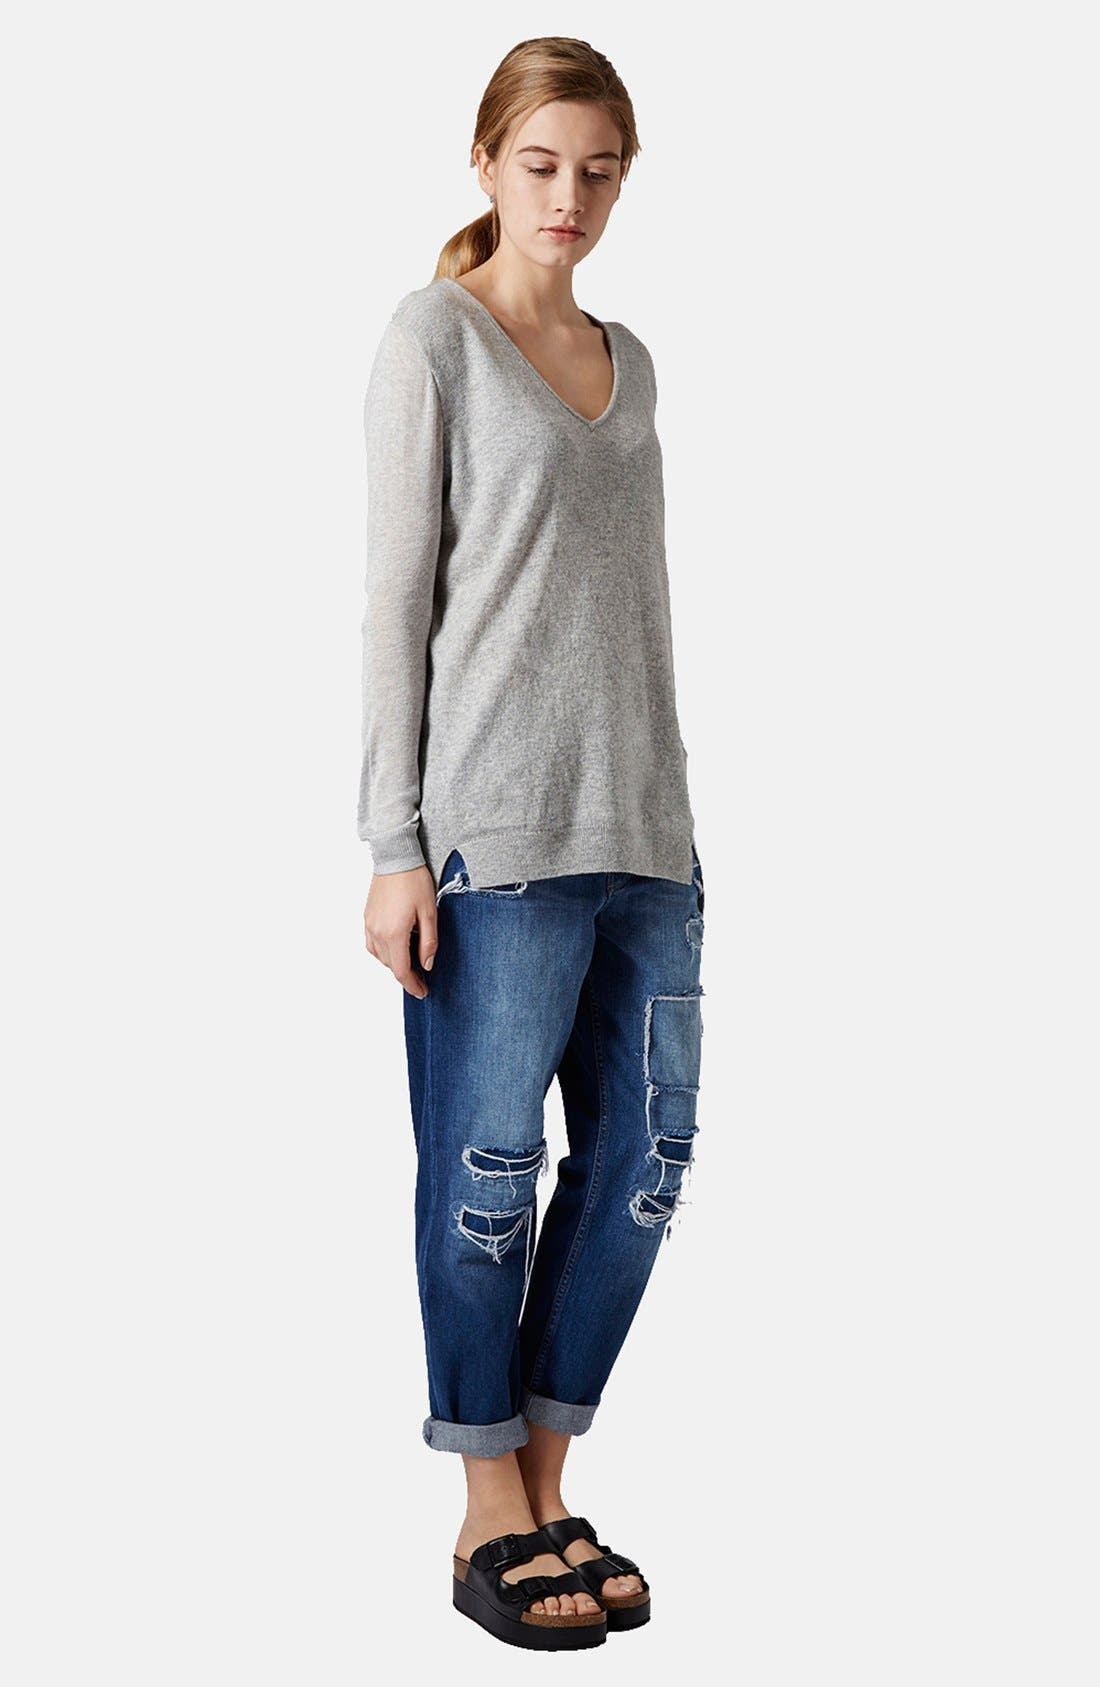 TOPSHOP, Sheer Sleeve Tunic Sweater, Alternate thumbnail 4, color, 050